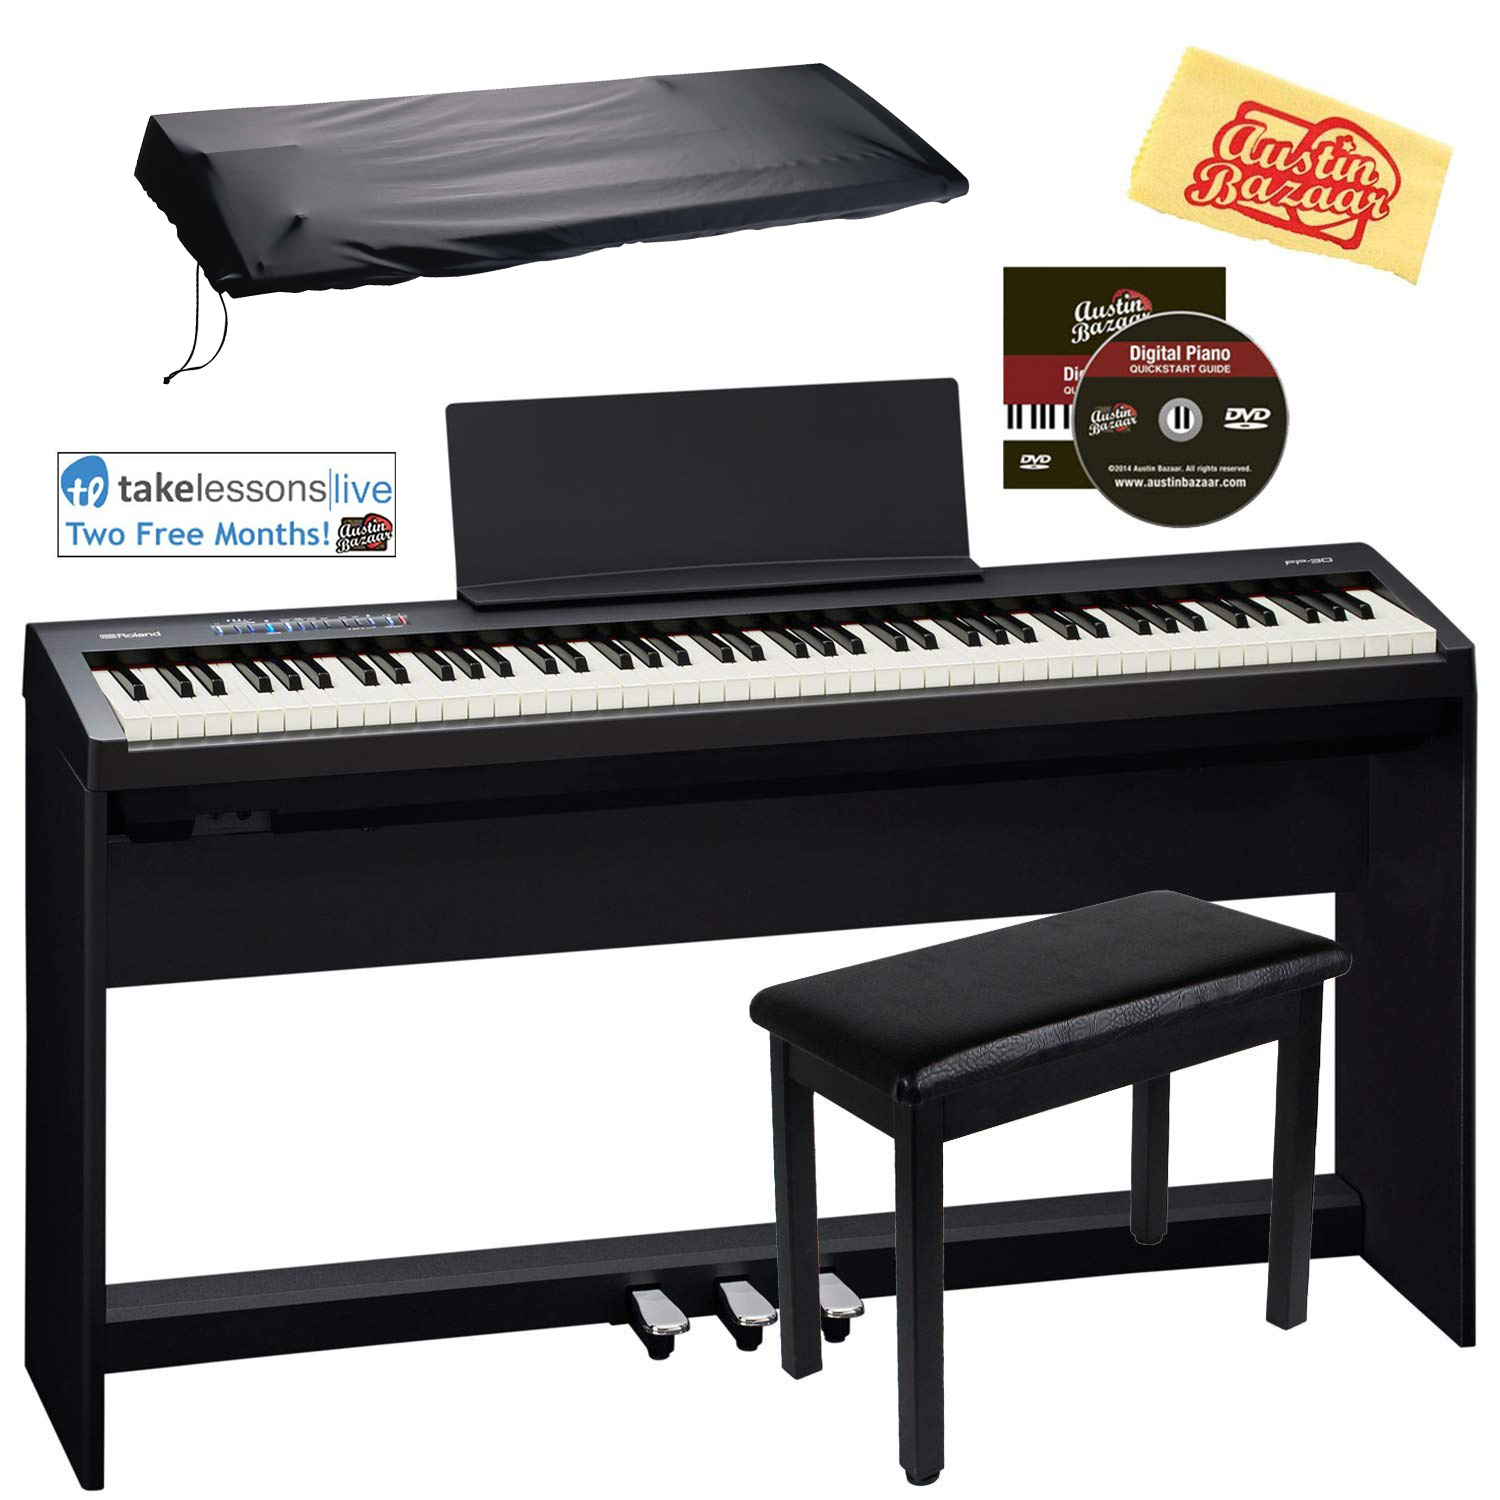 Roland FP-30 Digital Piano with KSC-70 Stand and KPD-70 Peda